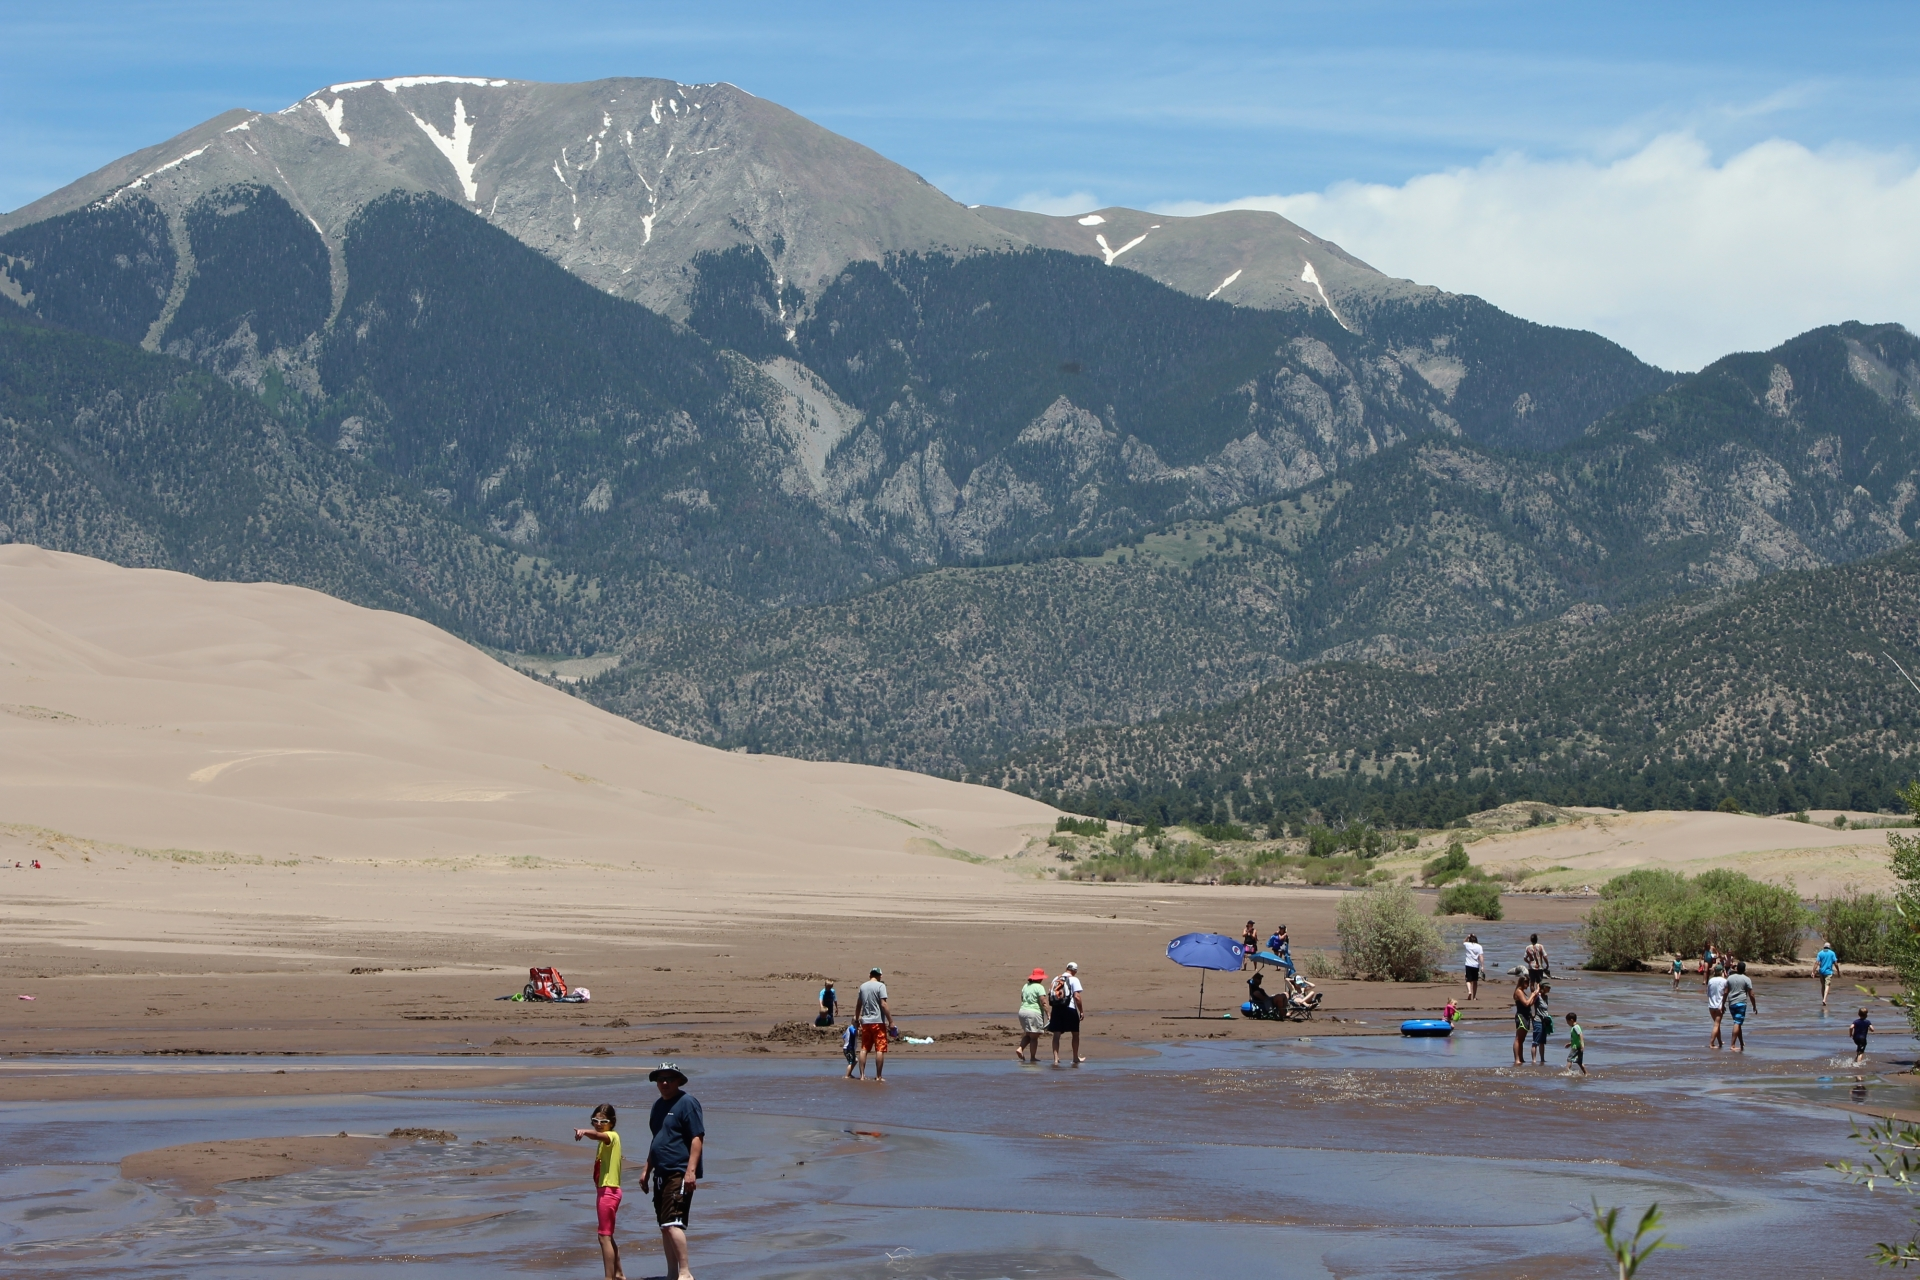 Surprisng river in the middle of a 600 ft sand dune at the base of a snow capped mountain in Colorado.  Wild escape for youngers and olders !!